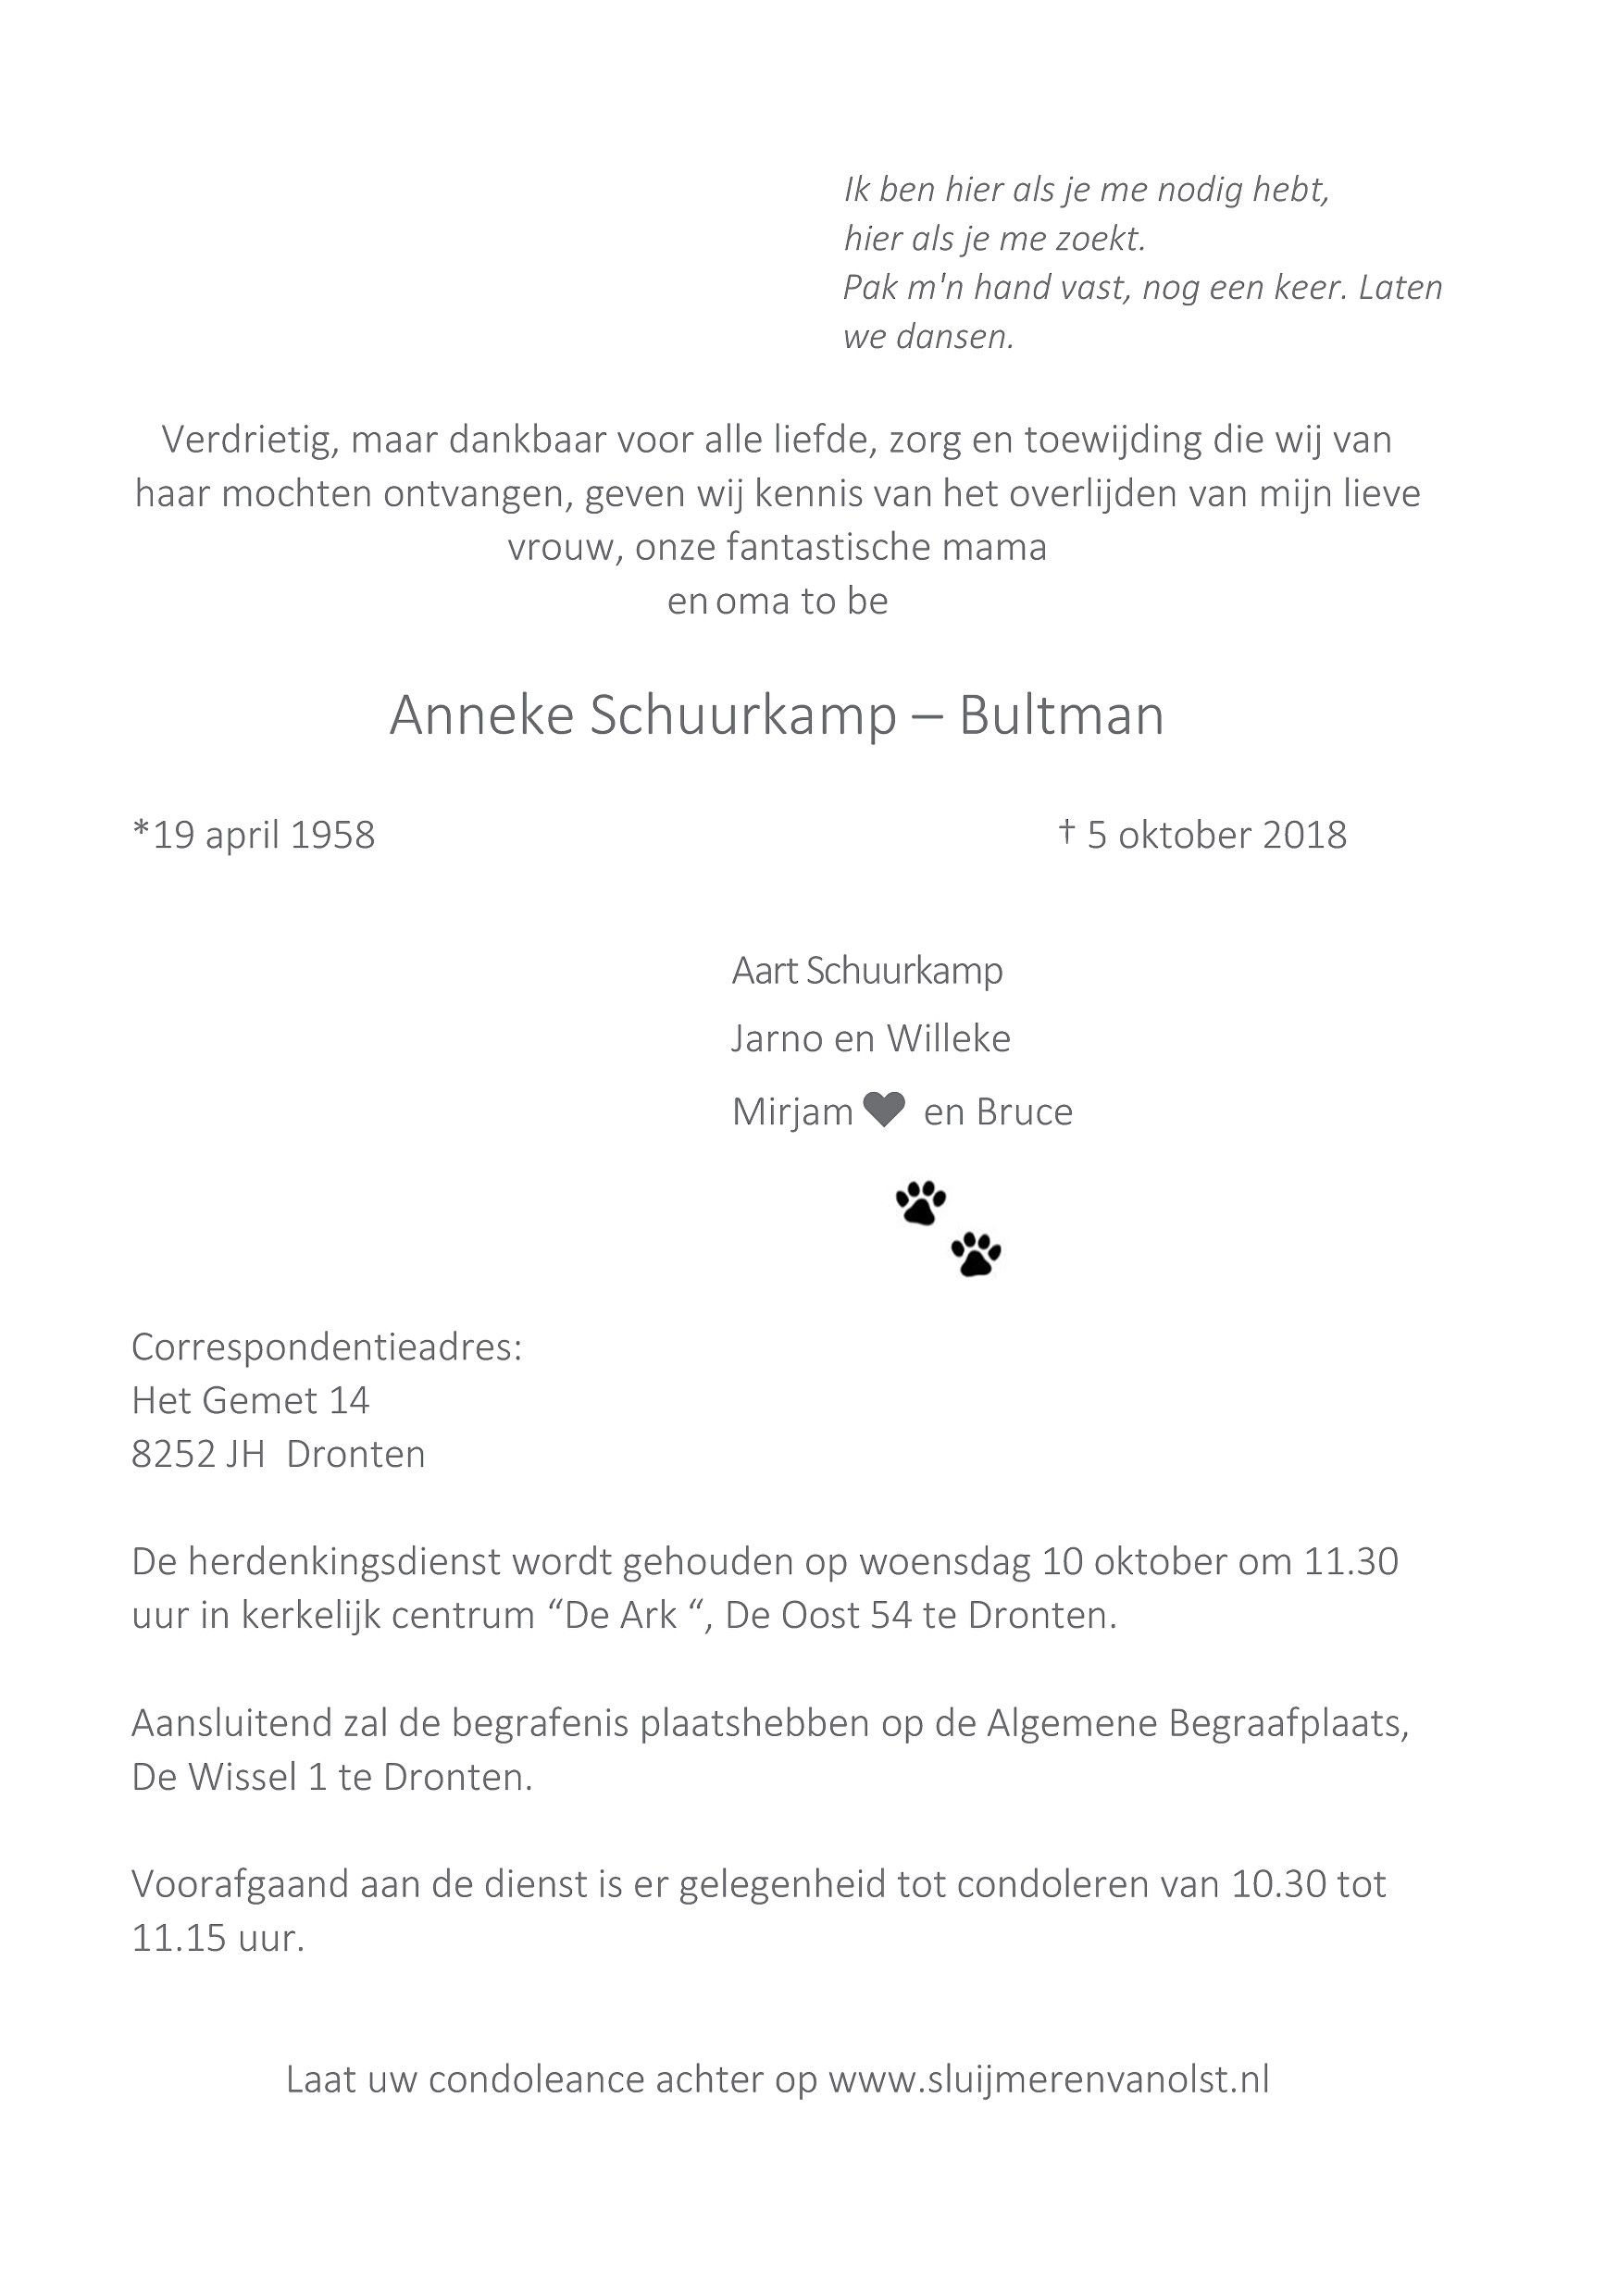 Anneke  Schuurkamp-Bultman Death notice